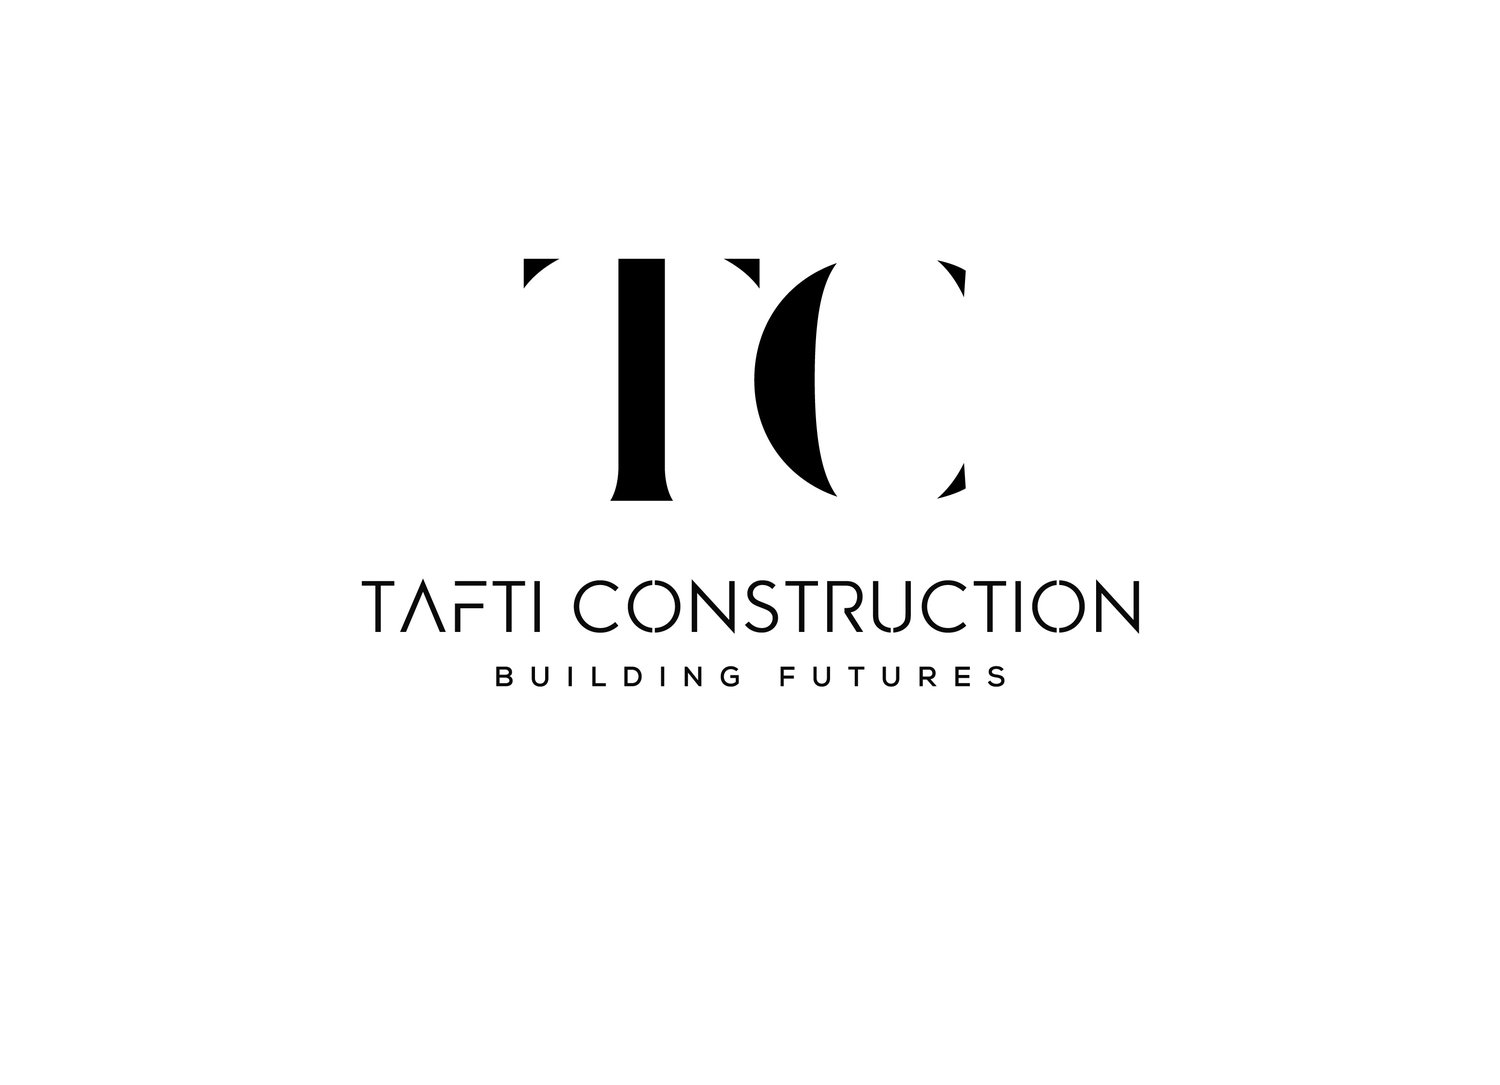 Tafti Construction